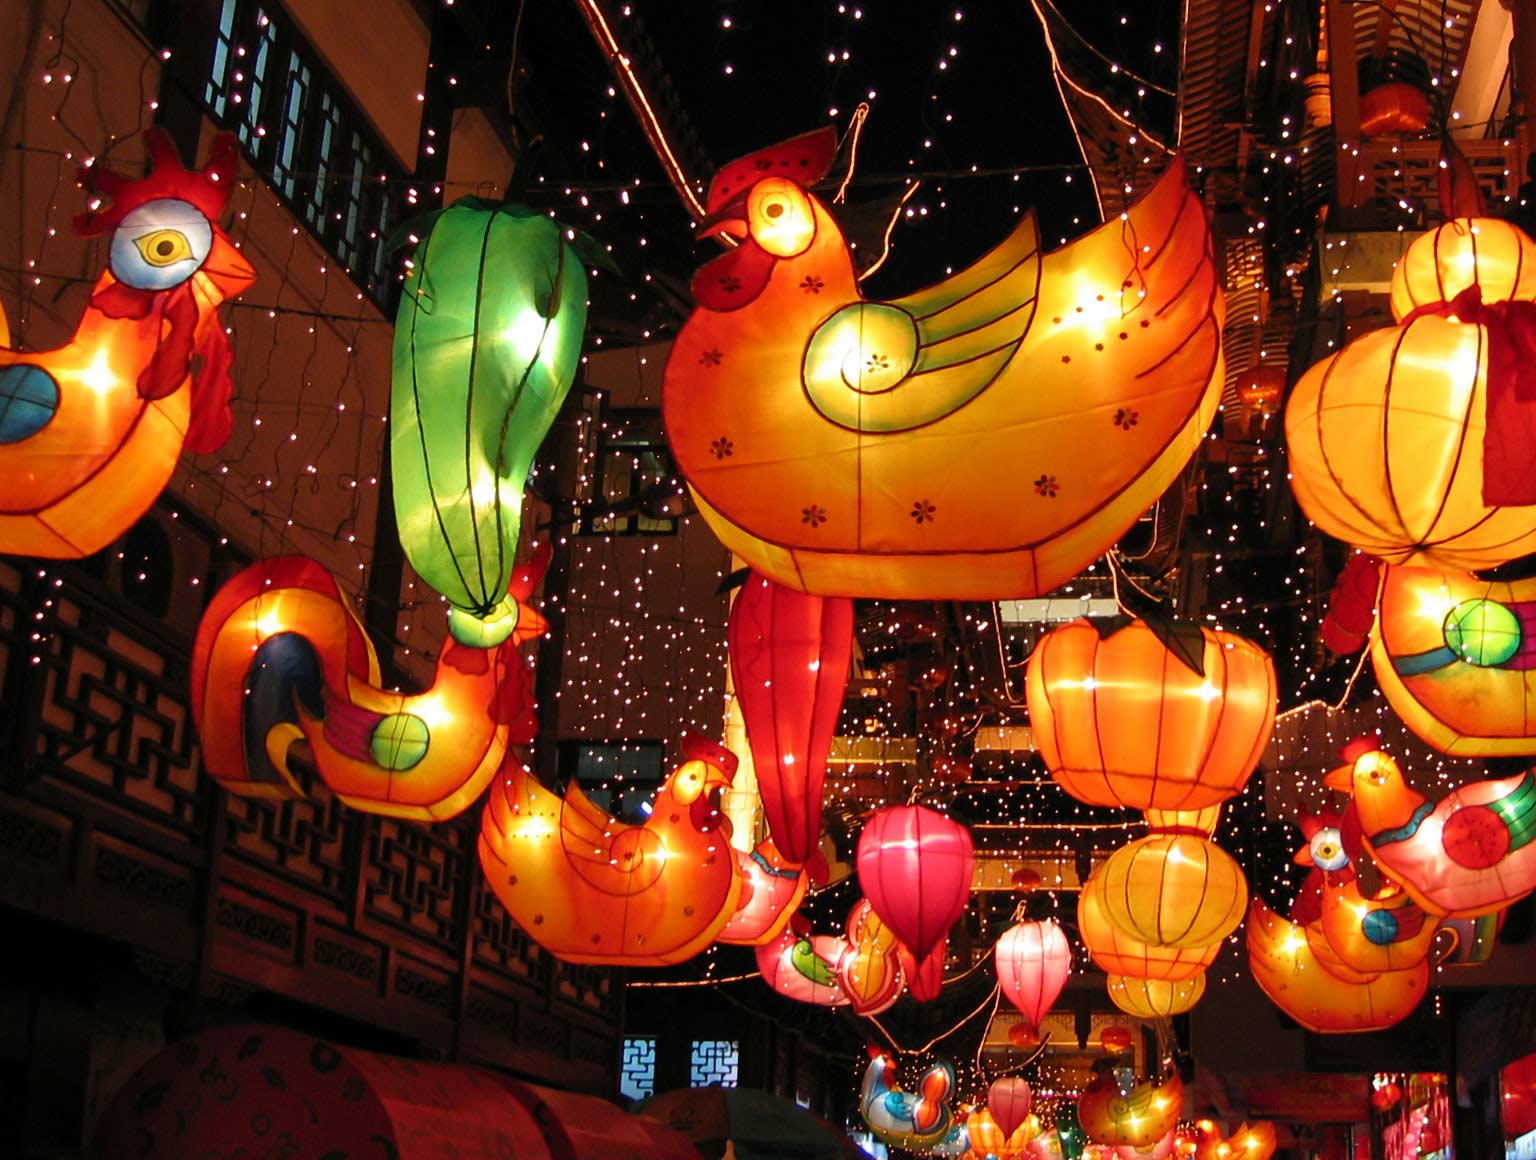 Chinese lanterns in the shape of roosters against a night sky